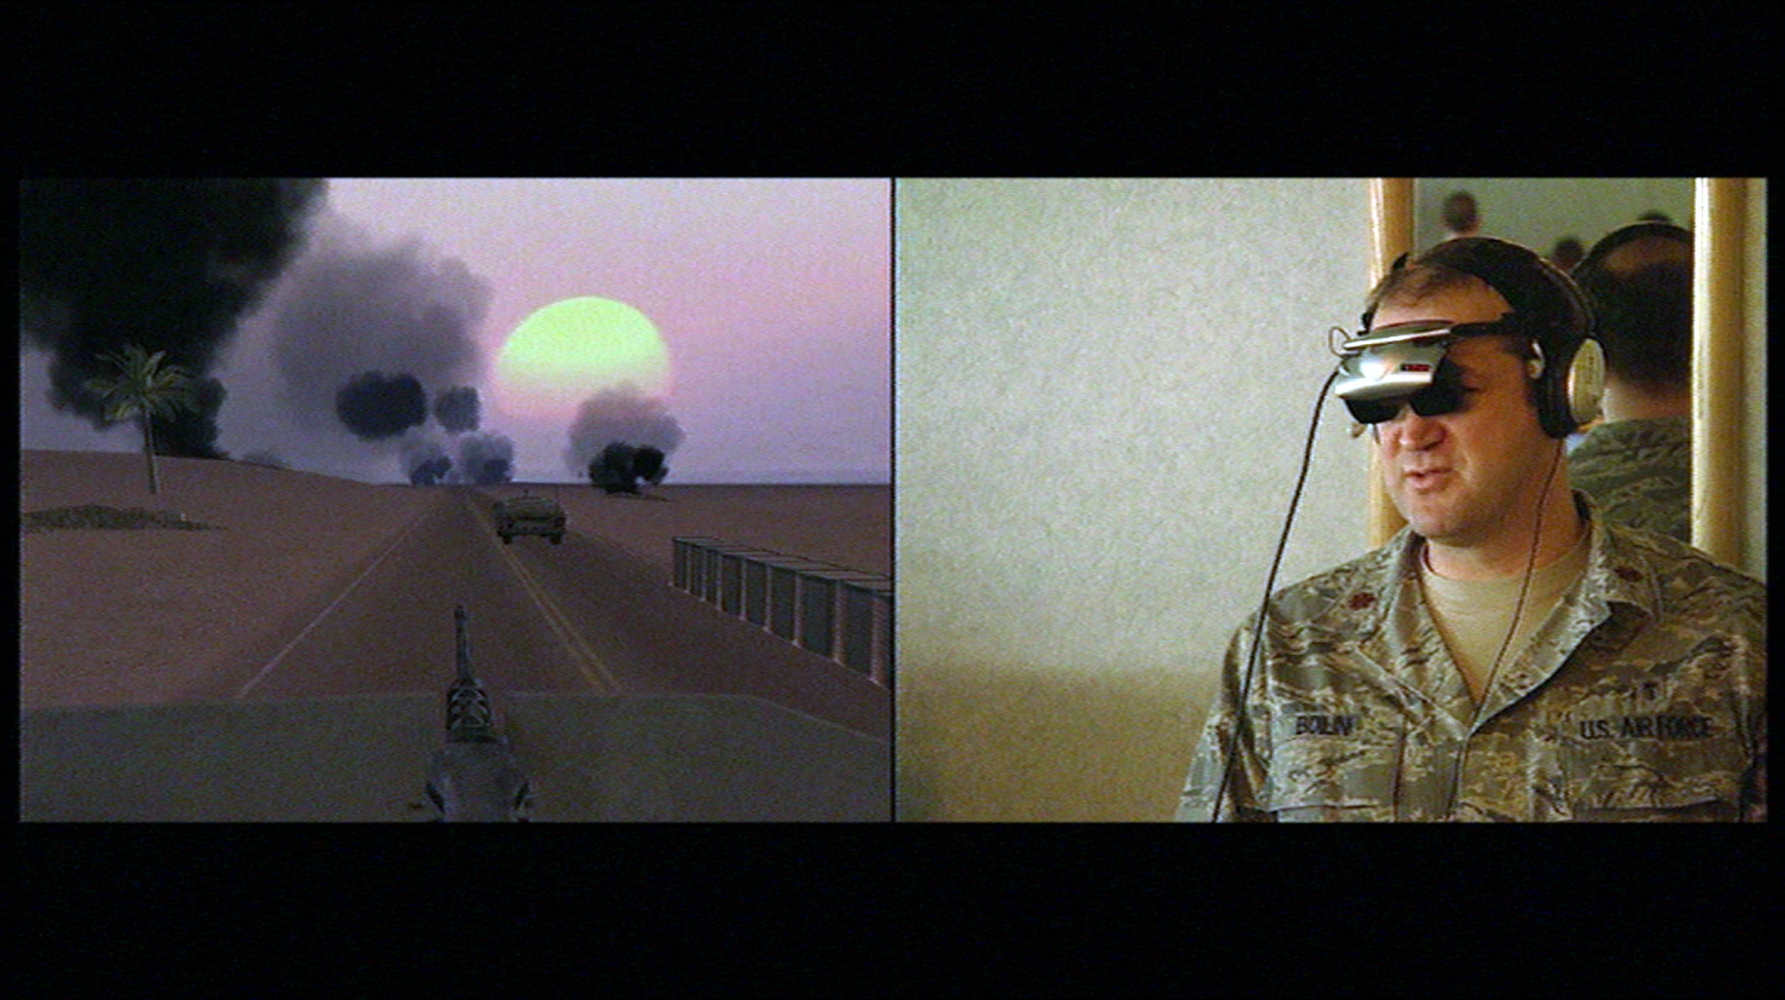 harun farocki essay films Find articles on the death of harun farocki in major media from  to 90 films,  including three feature films, essay films and documentaries.